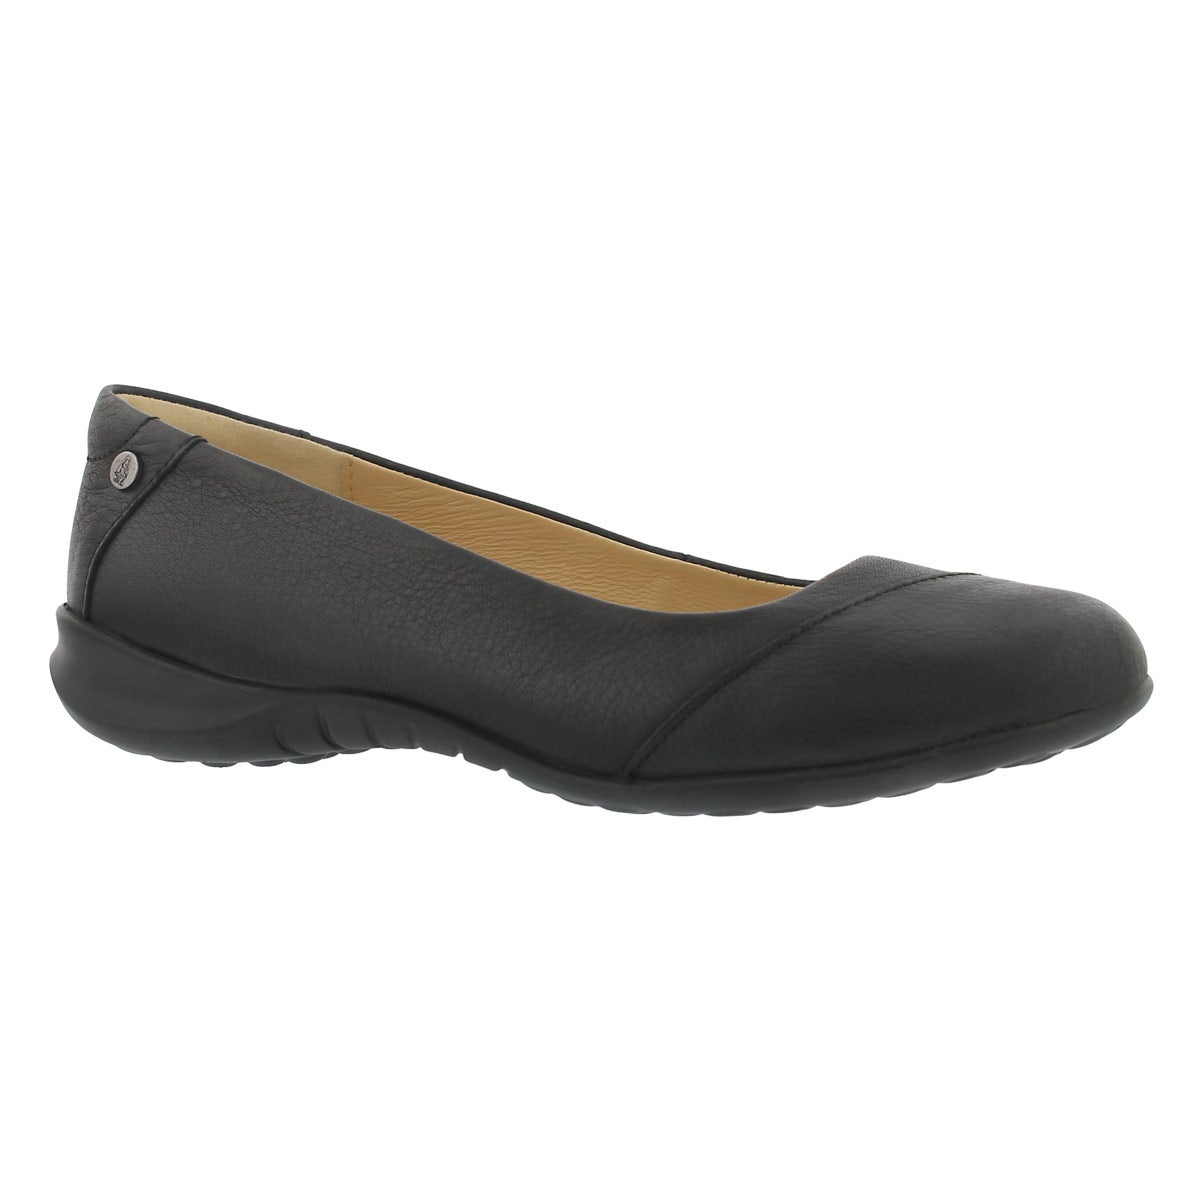 Buy Hush Puppies Men's Monaco MT Loafer and other Loafers & Slip-Ons at cablyrulwist.ml Our wide selection is eligible for free shipping and free returns.